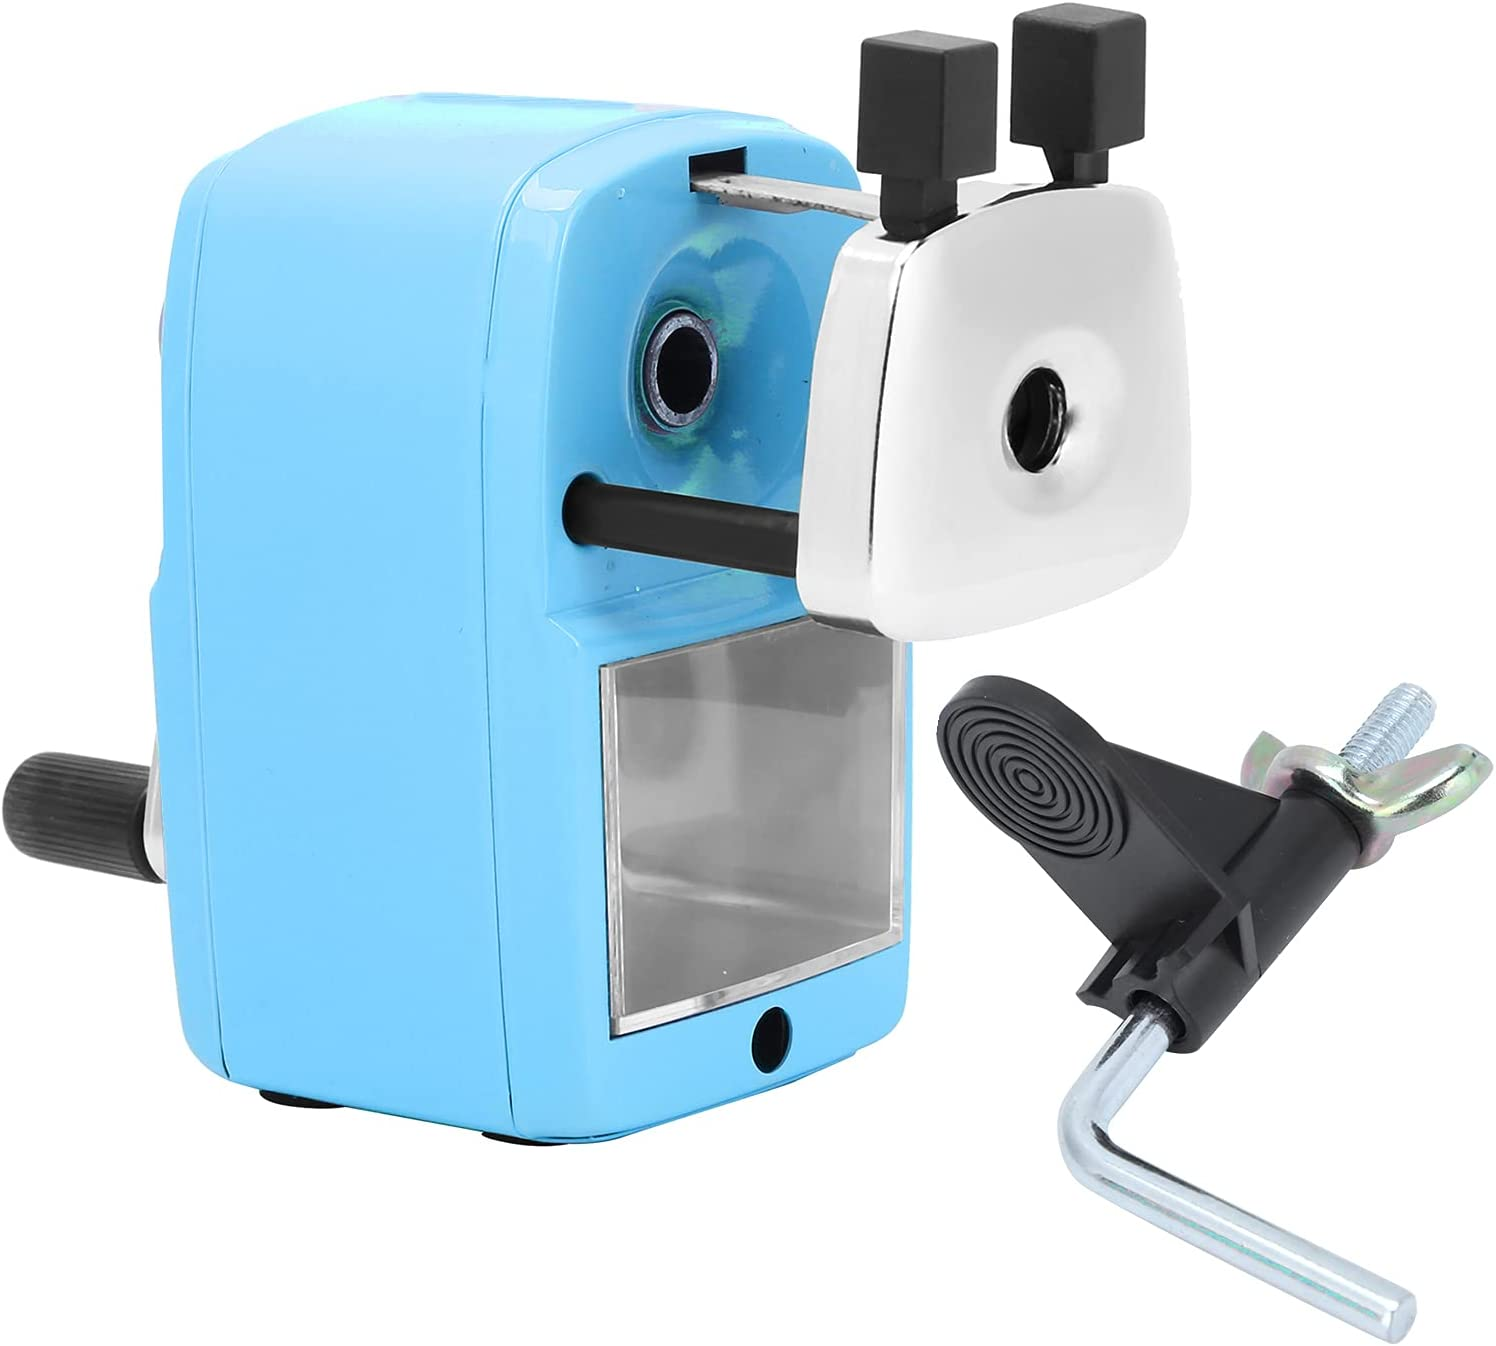 We OFFer at cheap prices Pencil Sharpener Discount mail order with Bracket 8mm for Portable School Diameter C